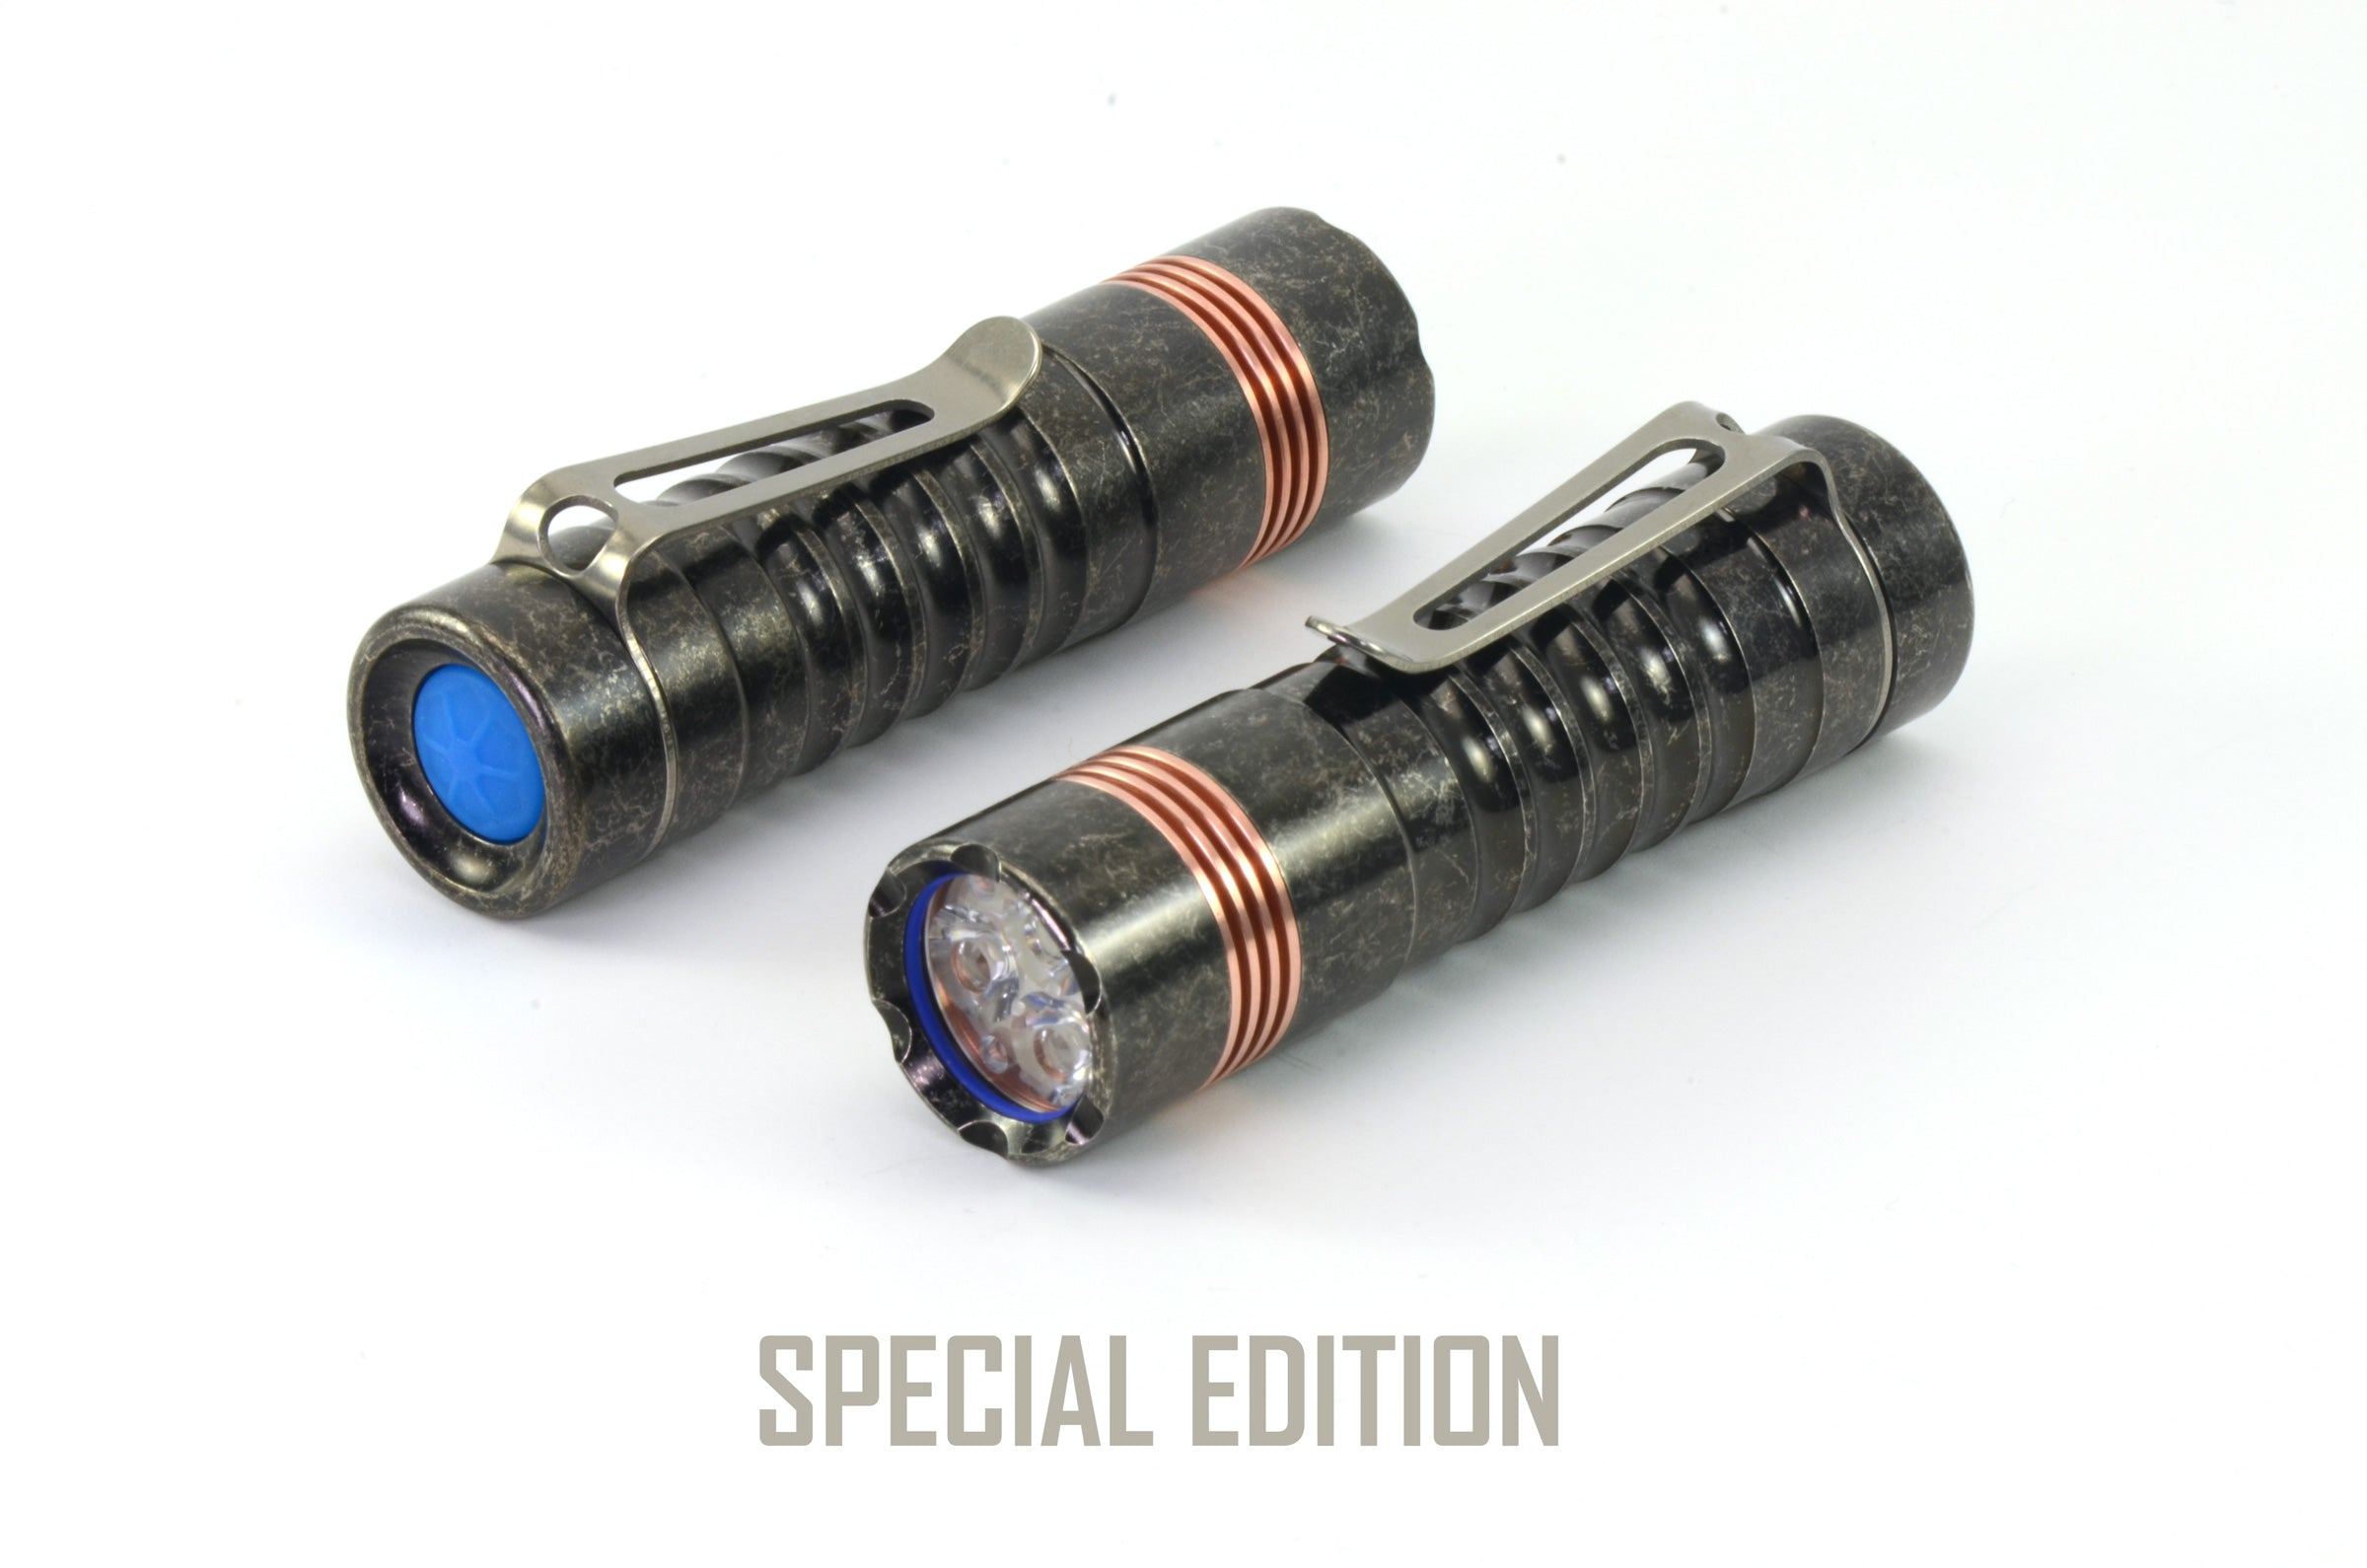 Delta Flashlight Special Editions